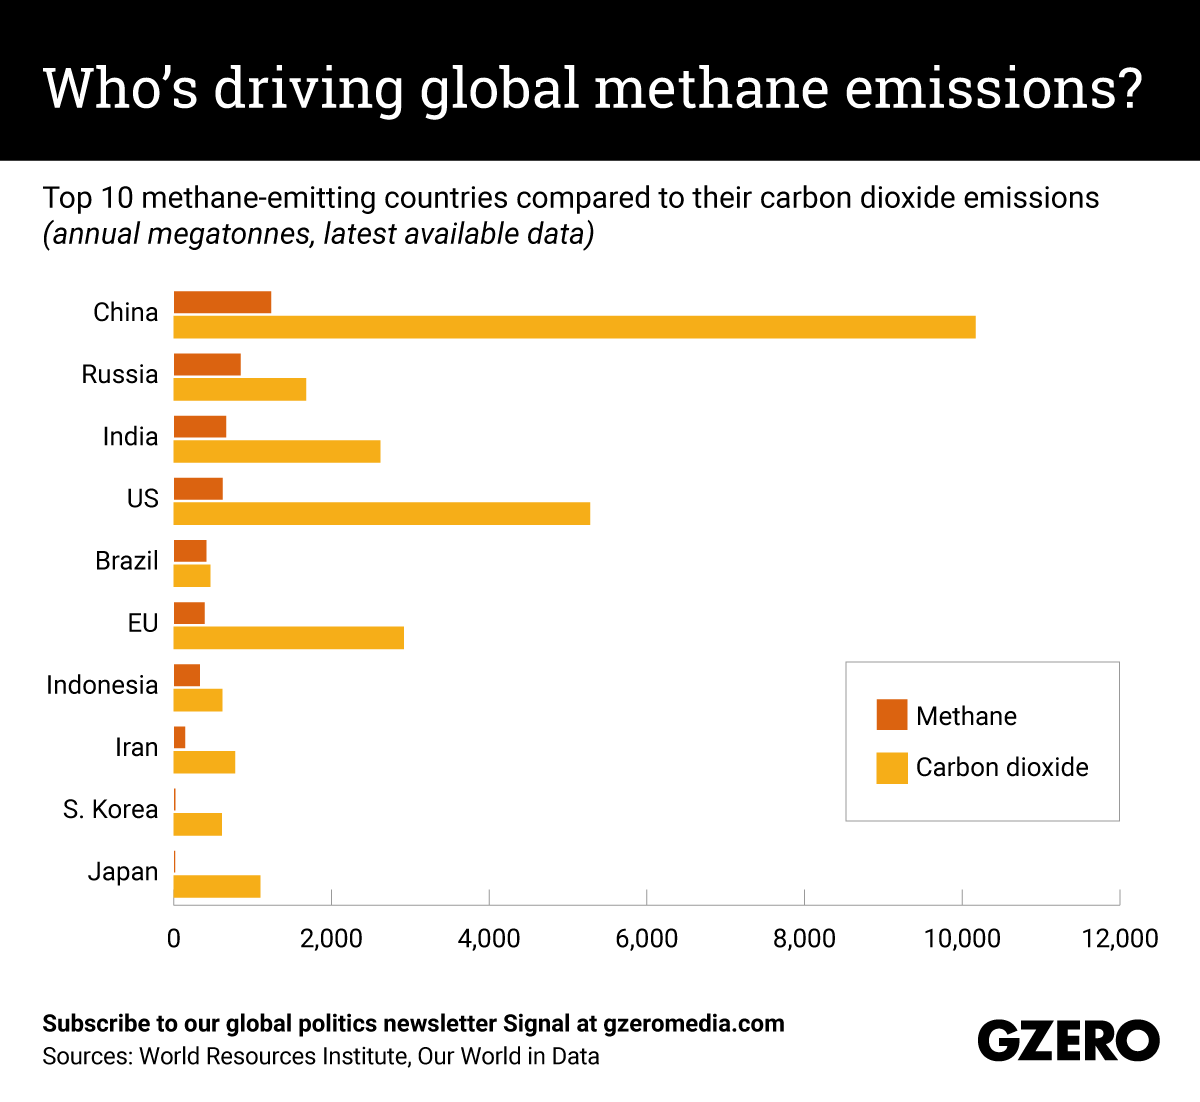 The Graphic Truth: Who's driving global methane emissions?